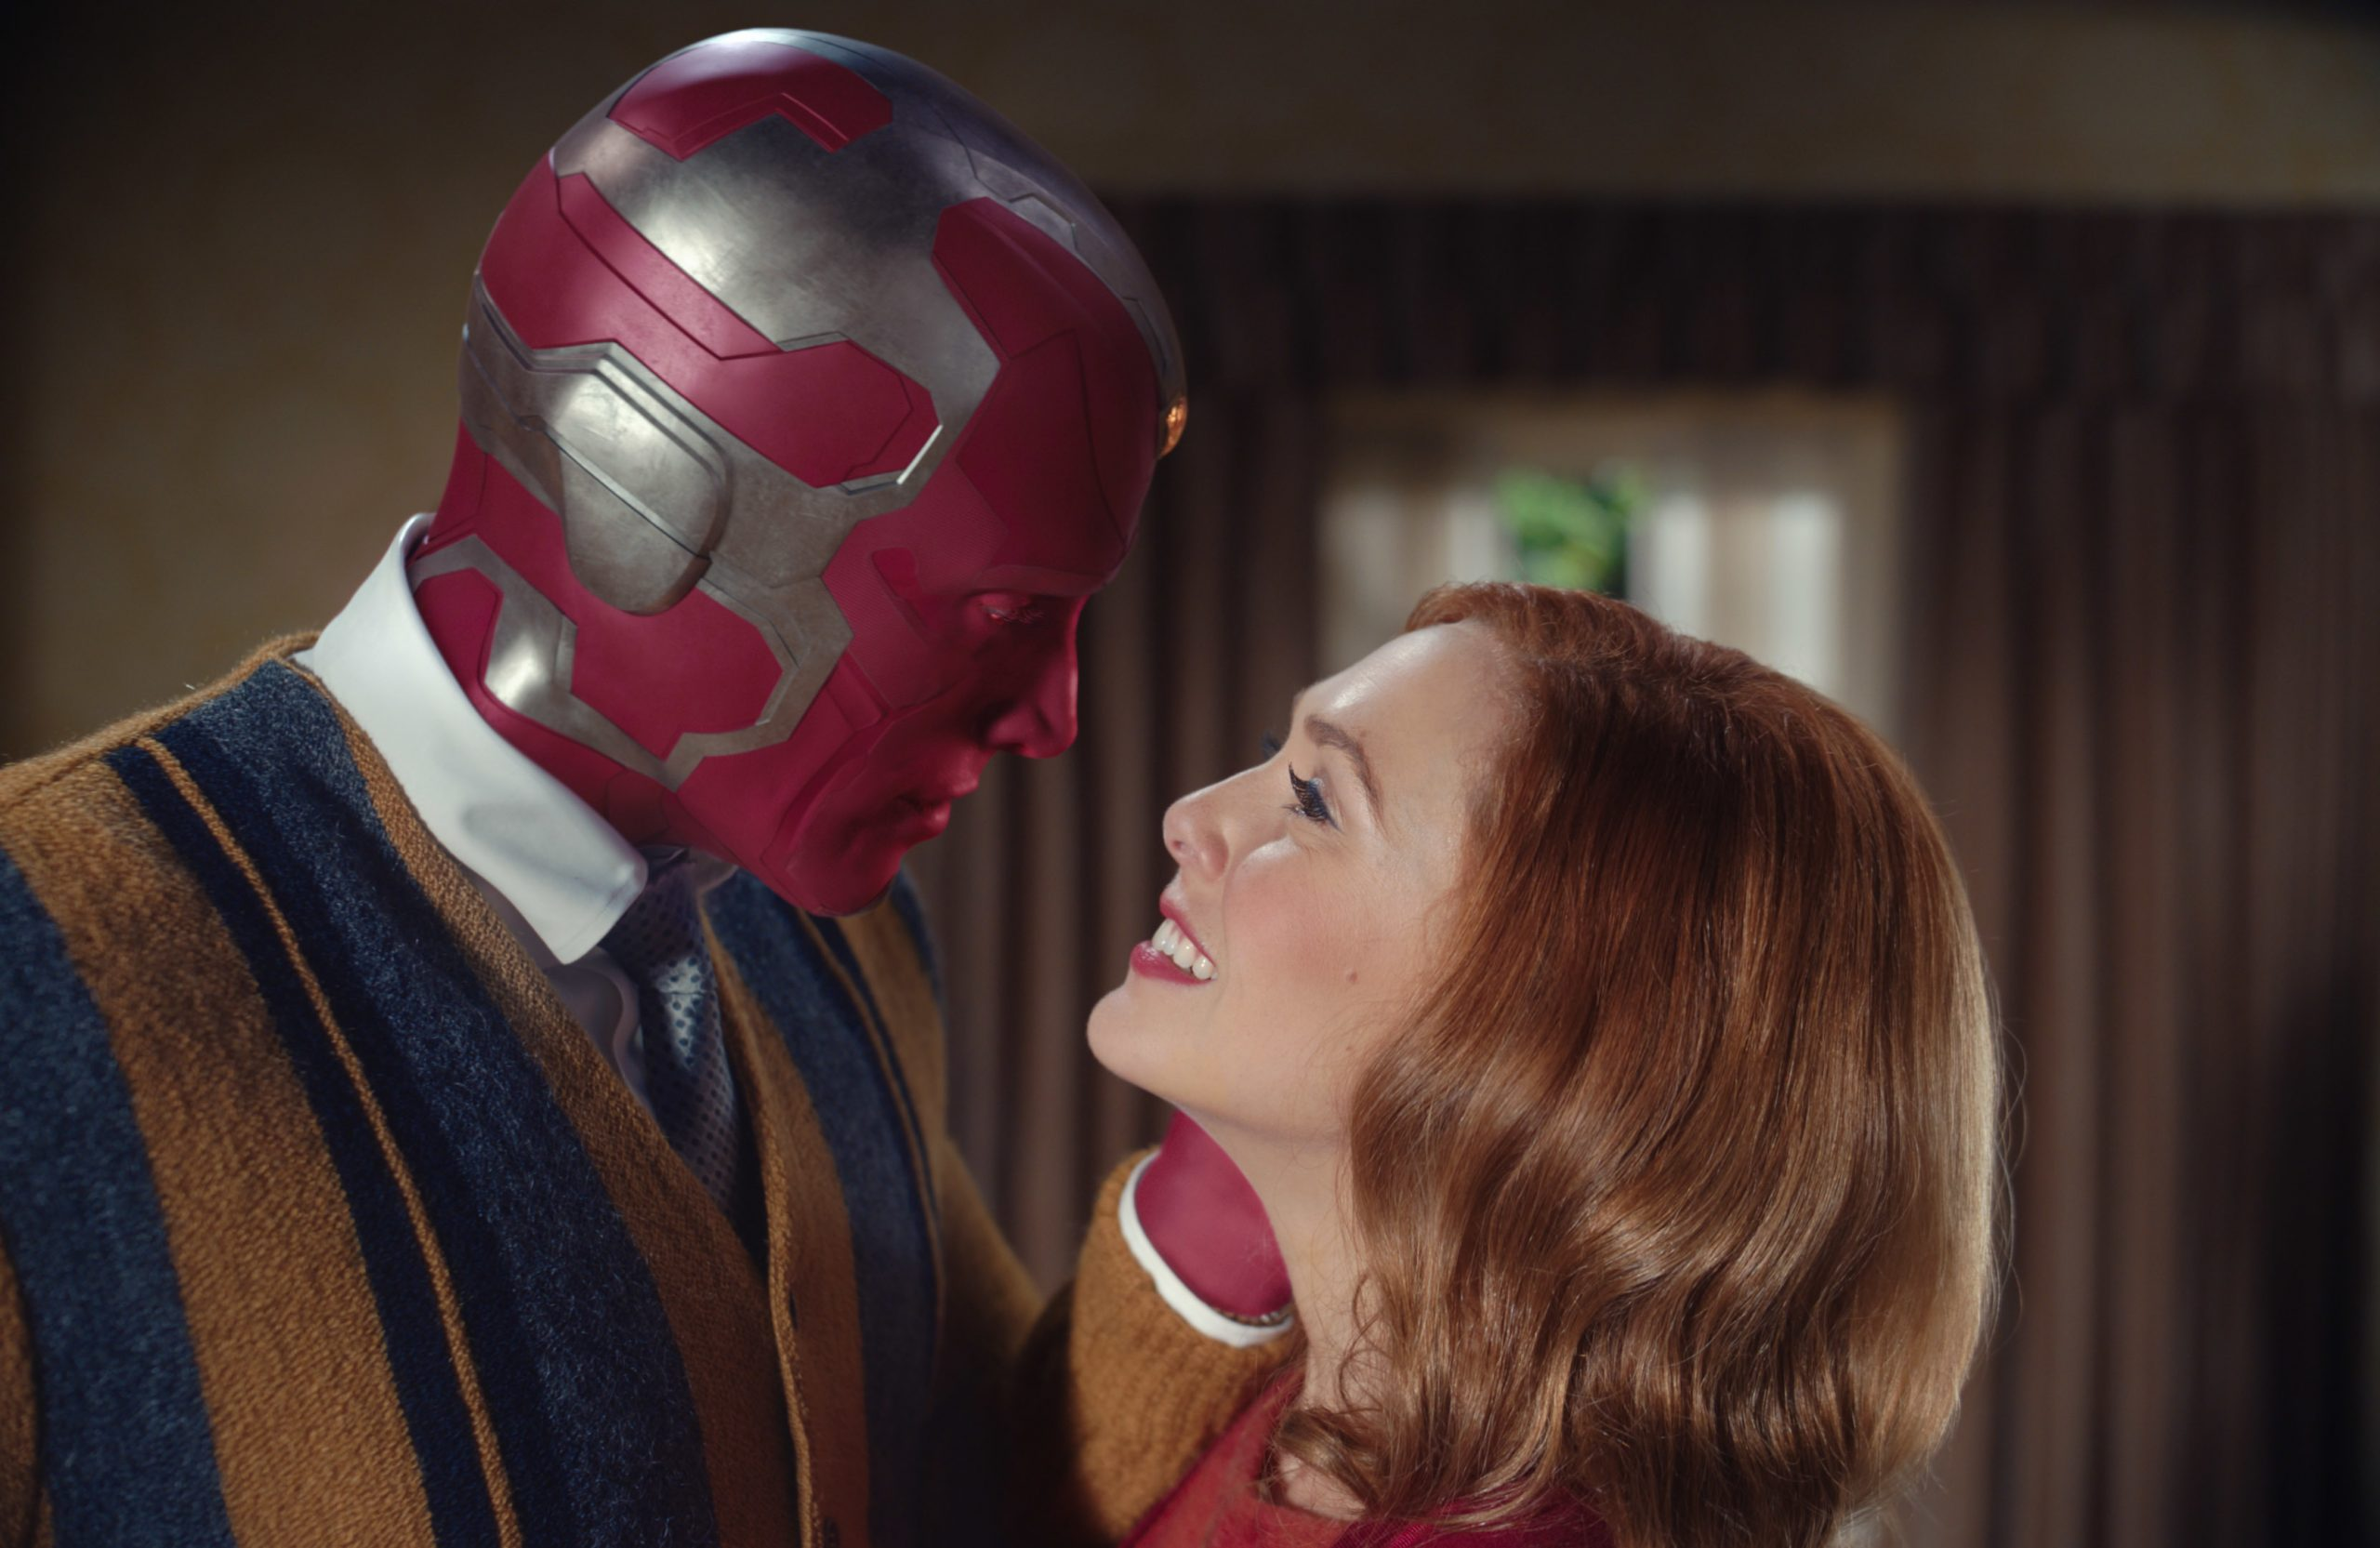 Paul Bettany as Vision and Elizabeth Olsen as Wanda Maximoff in 'WandaVision